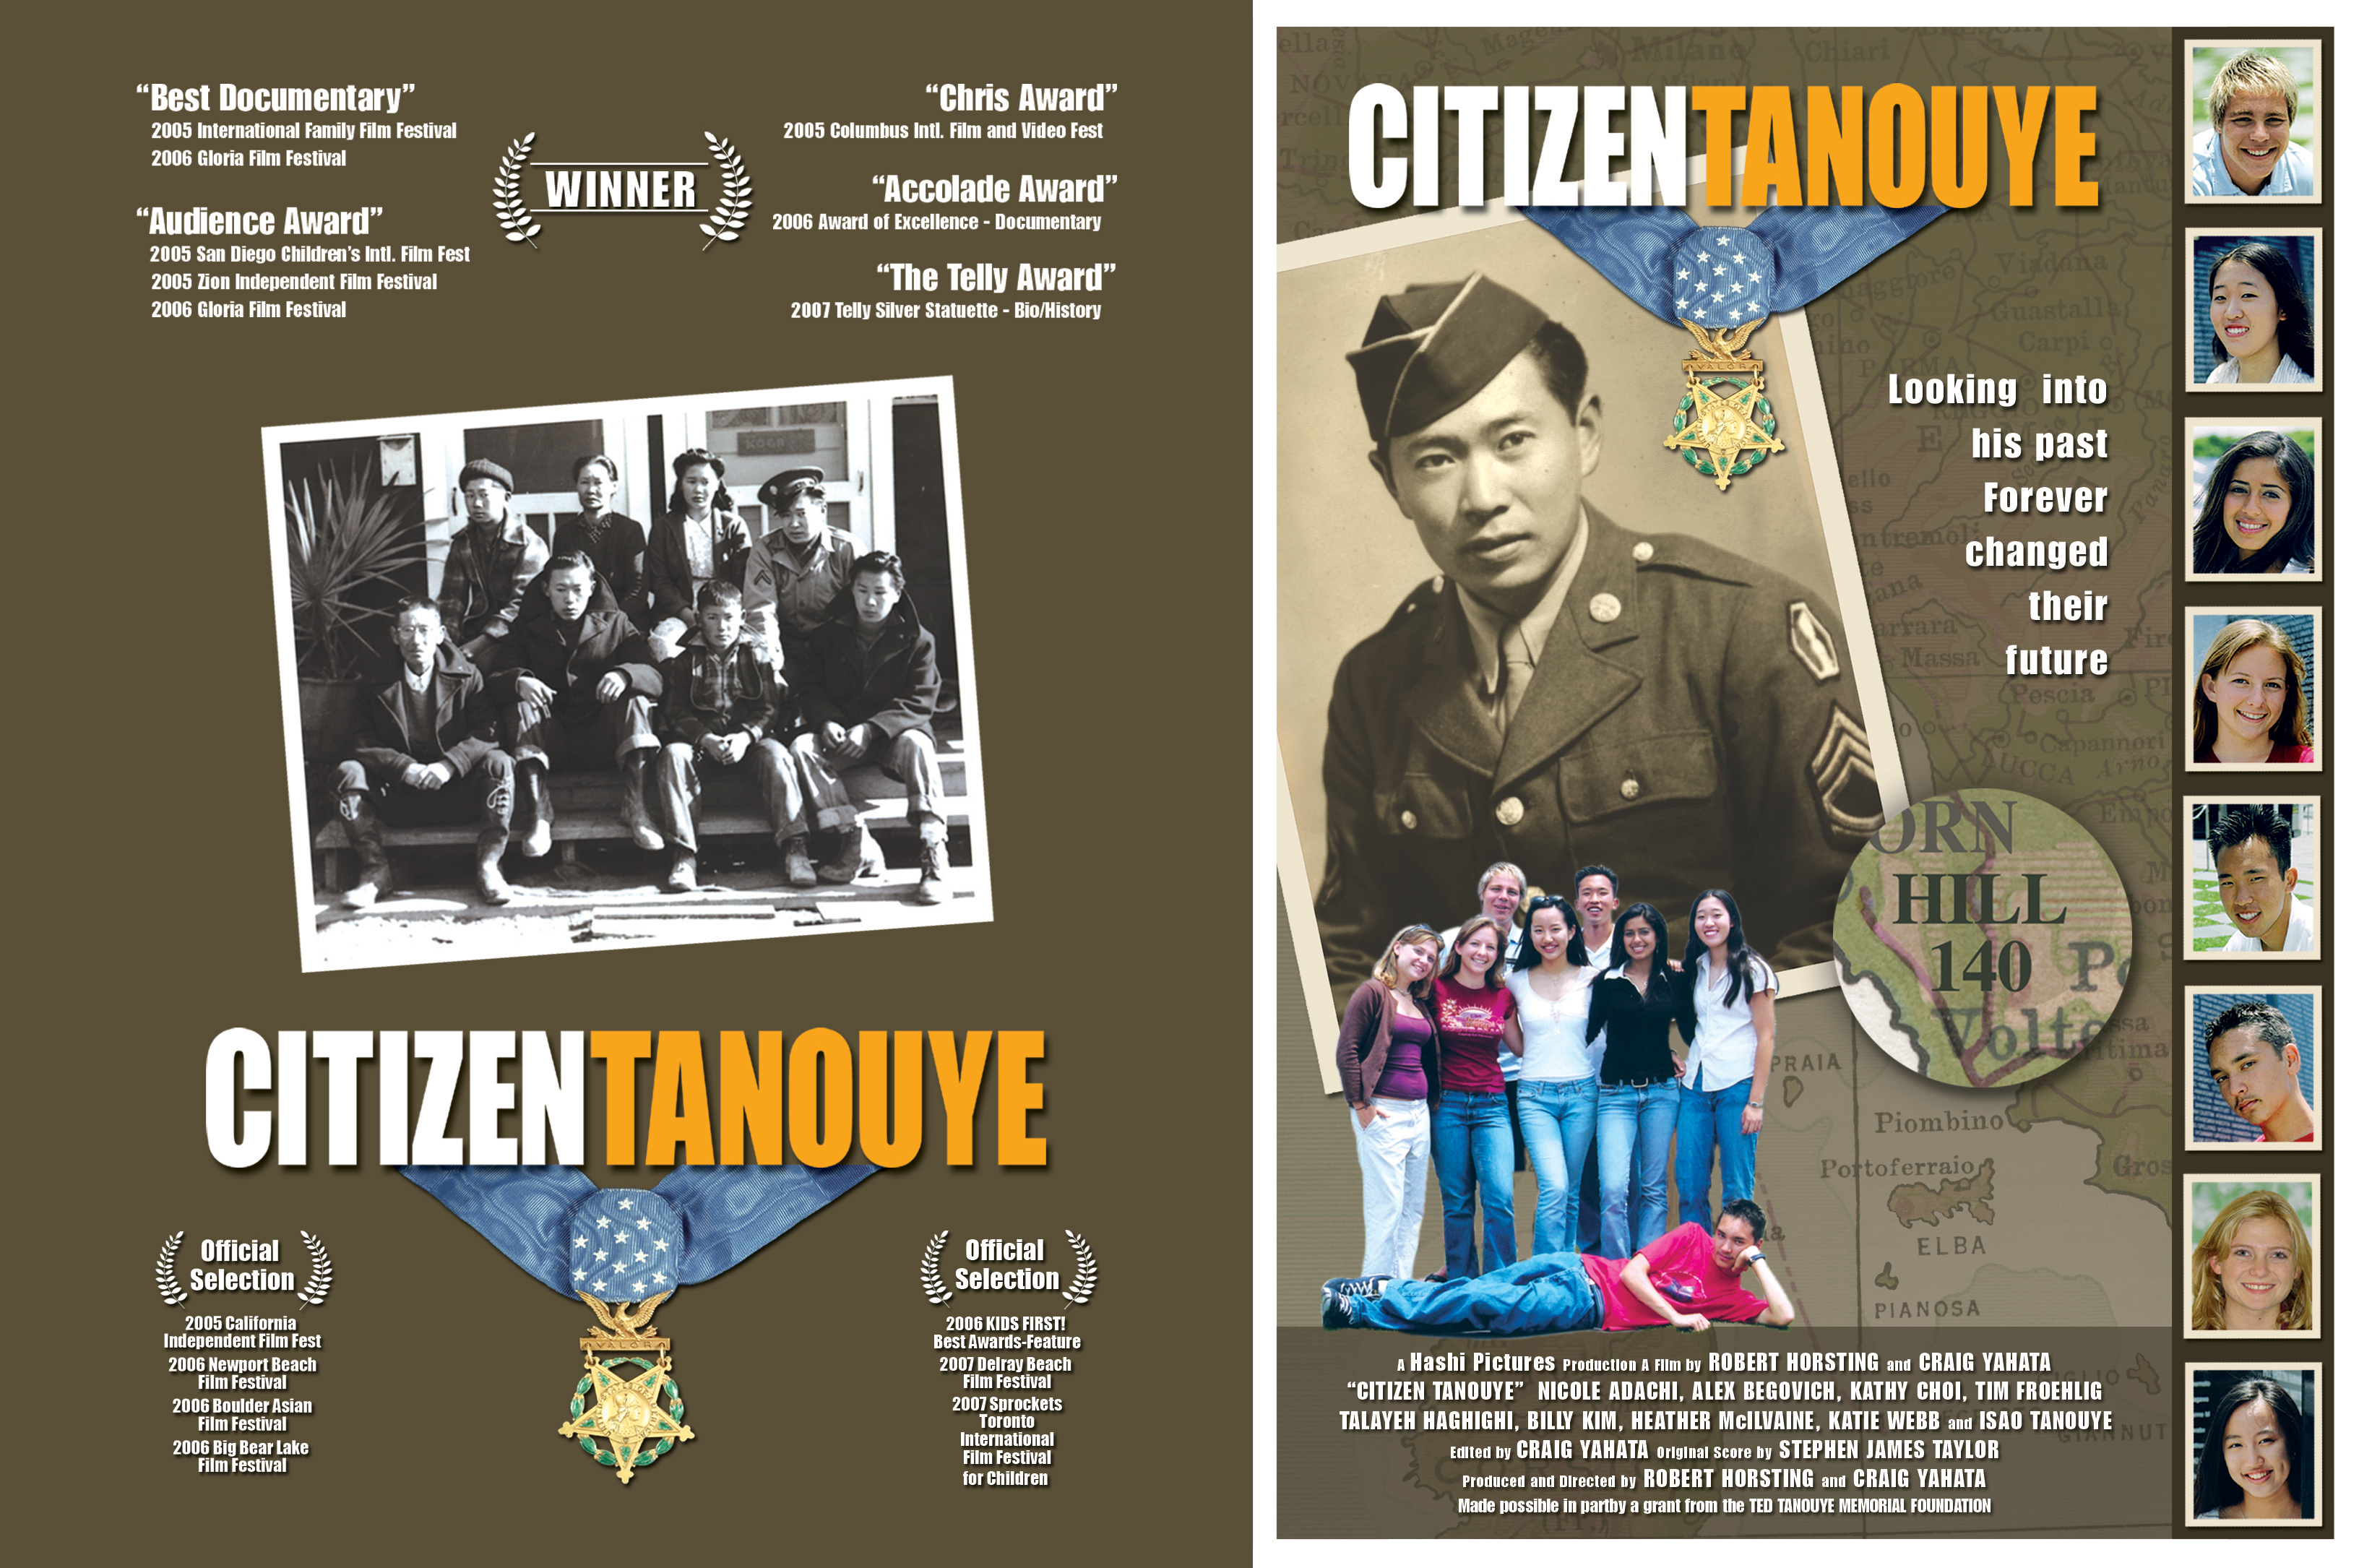 CITIZEN TANOUYE